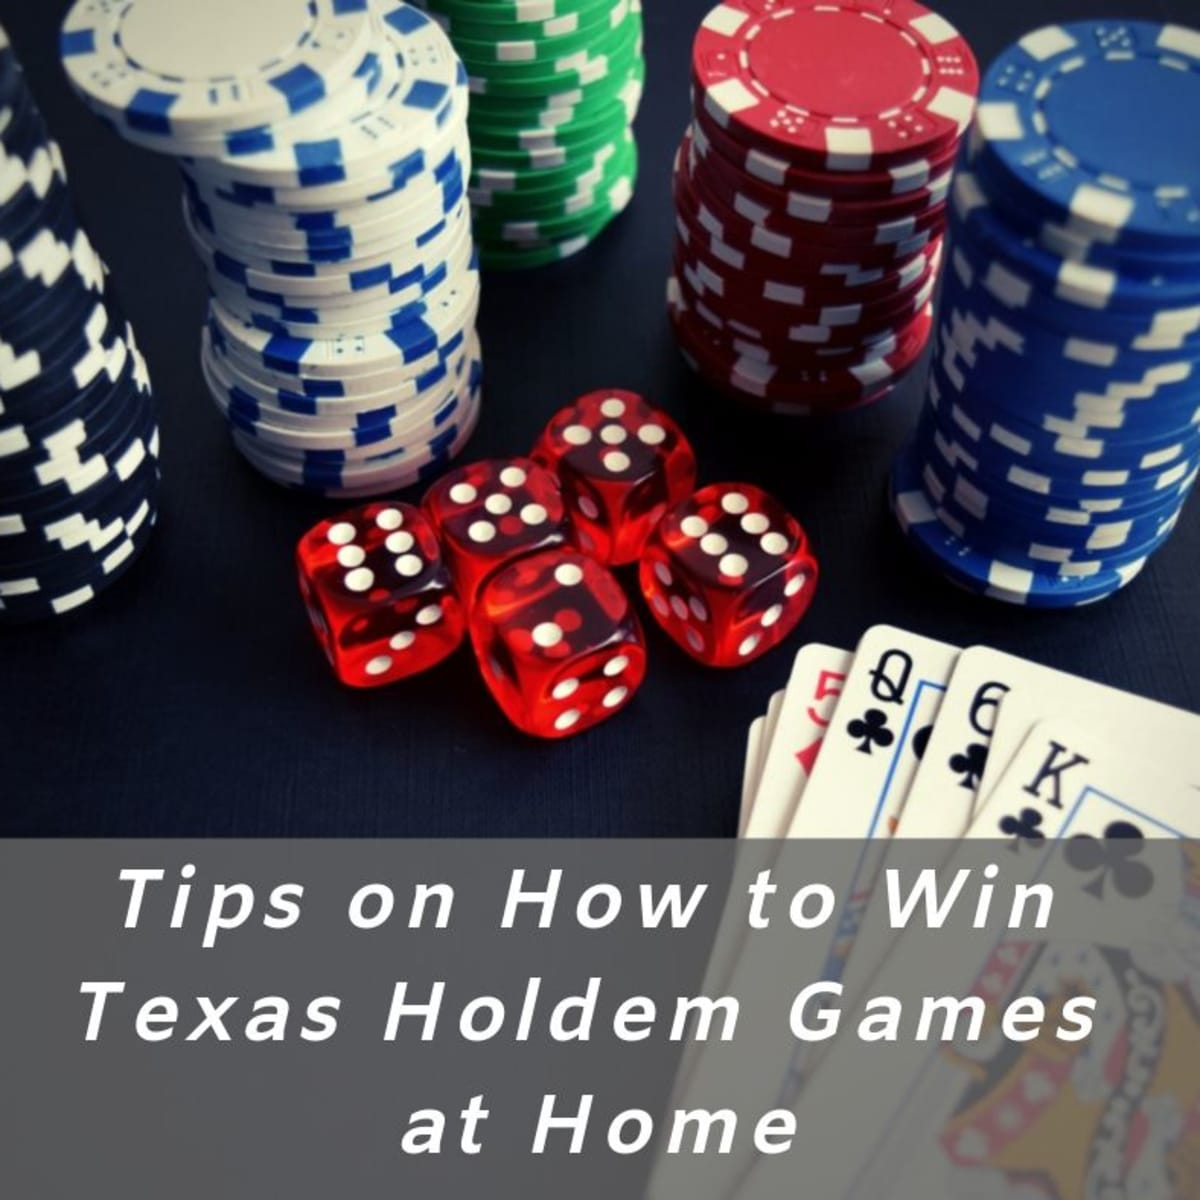 Texas Holdem Strategy 8 Mistakes Home Game Poker Players Make Hobbylark Games And Hobbies